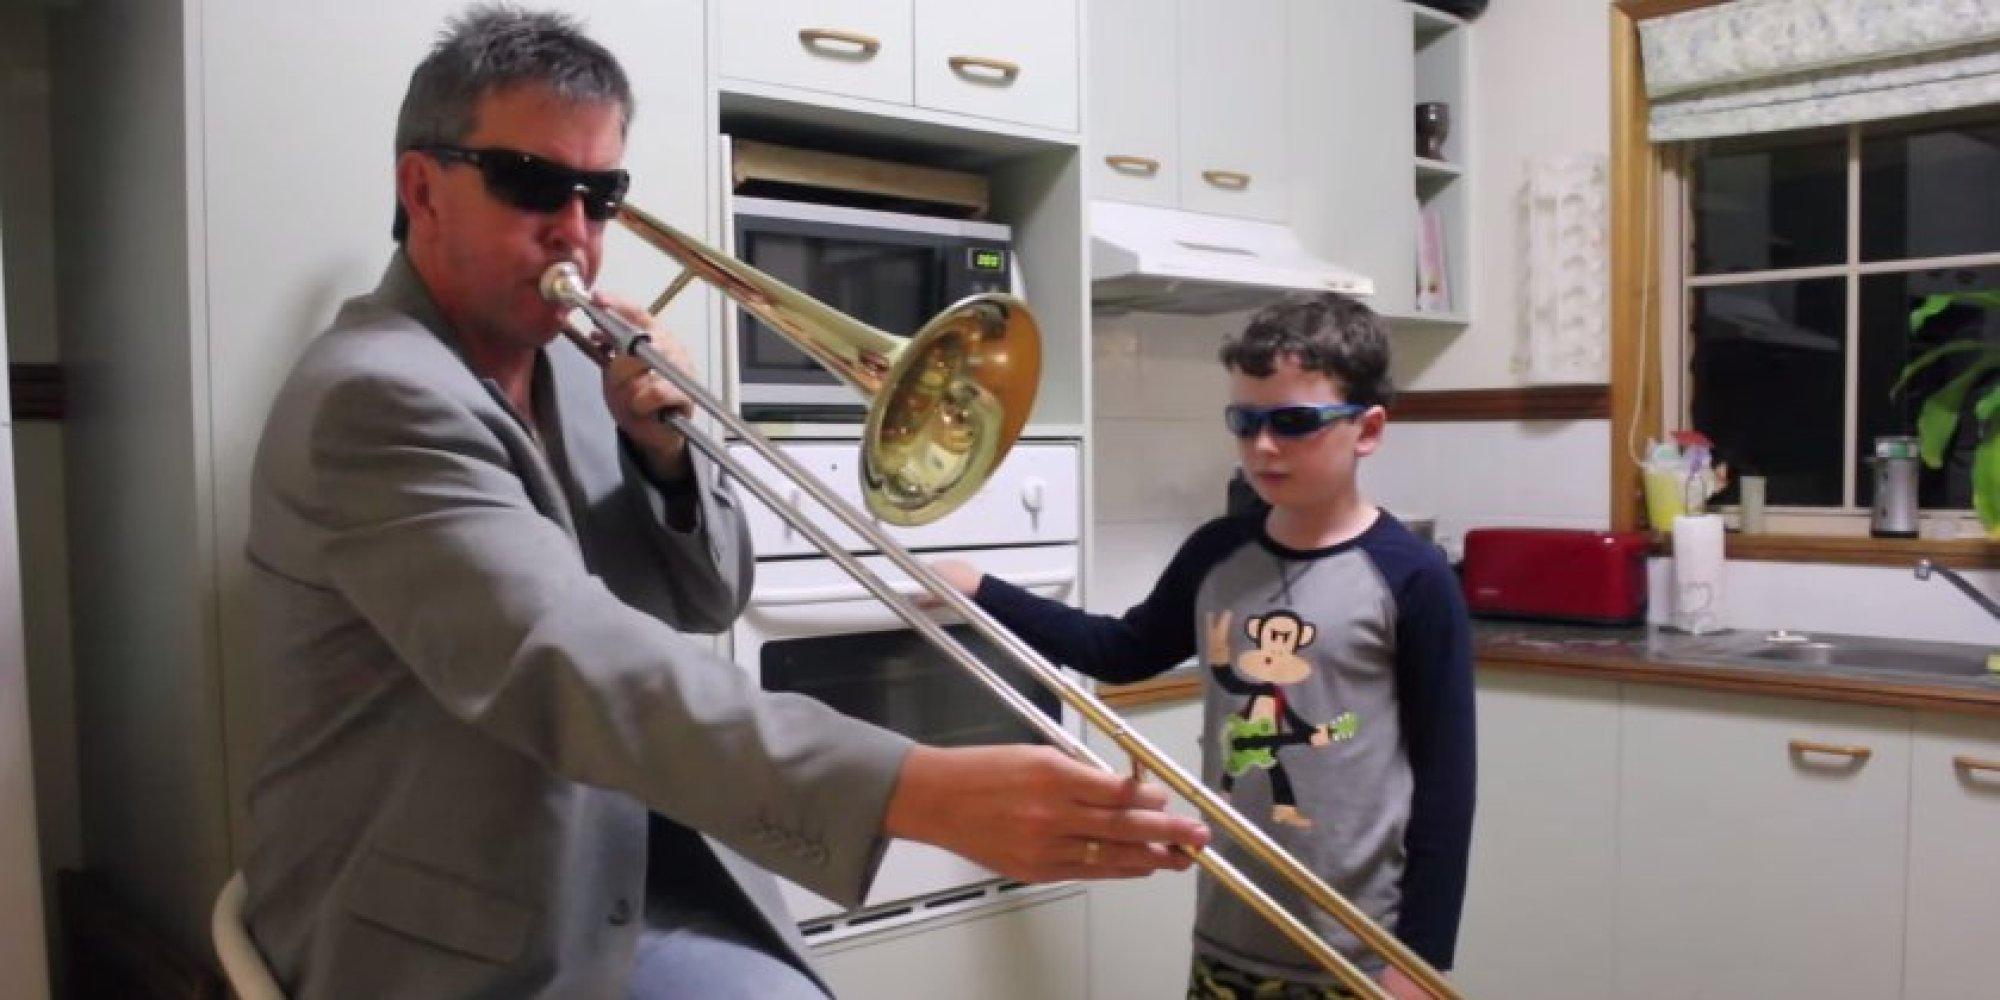 Dad On Trombone Boy On Oven Perform Cover Of The Year